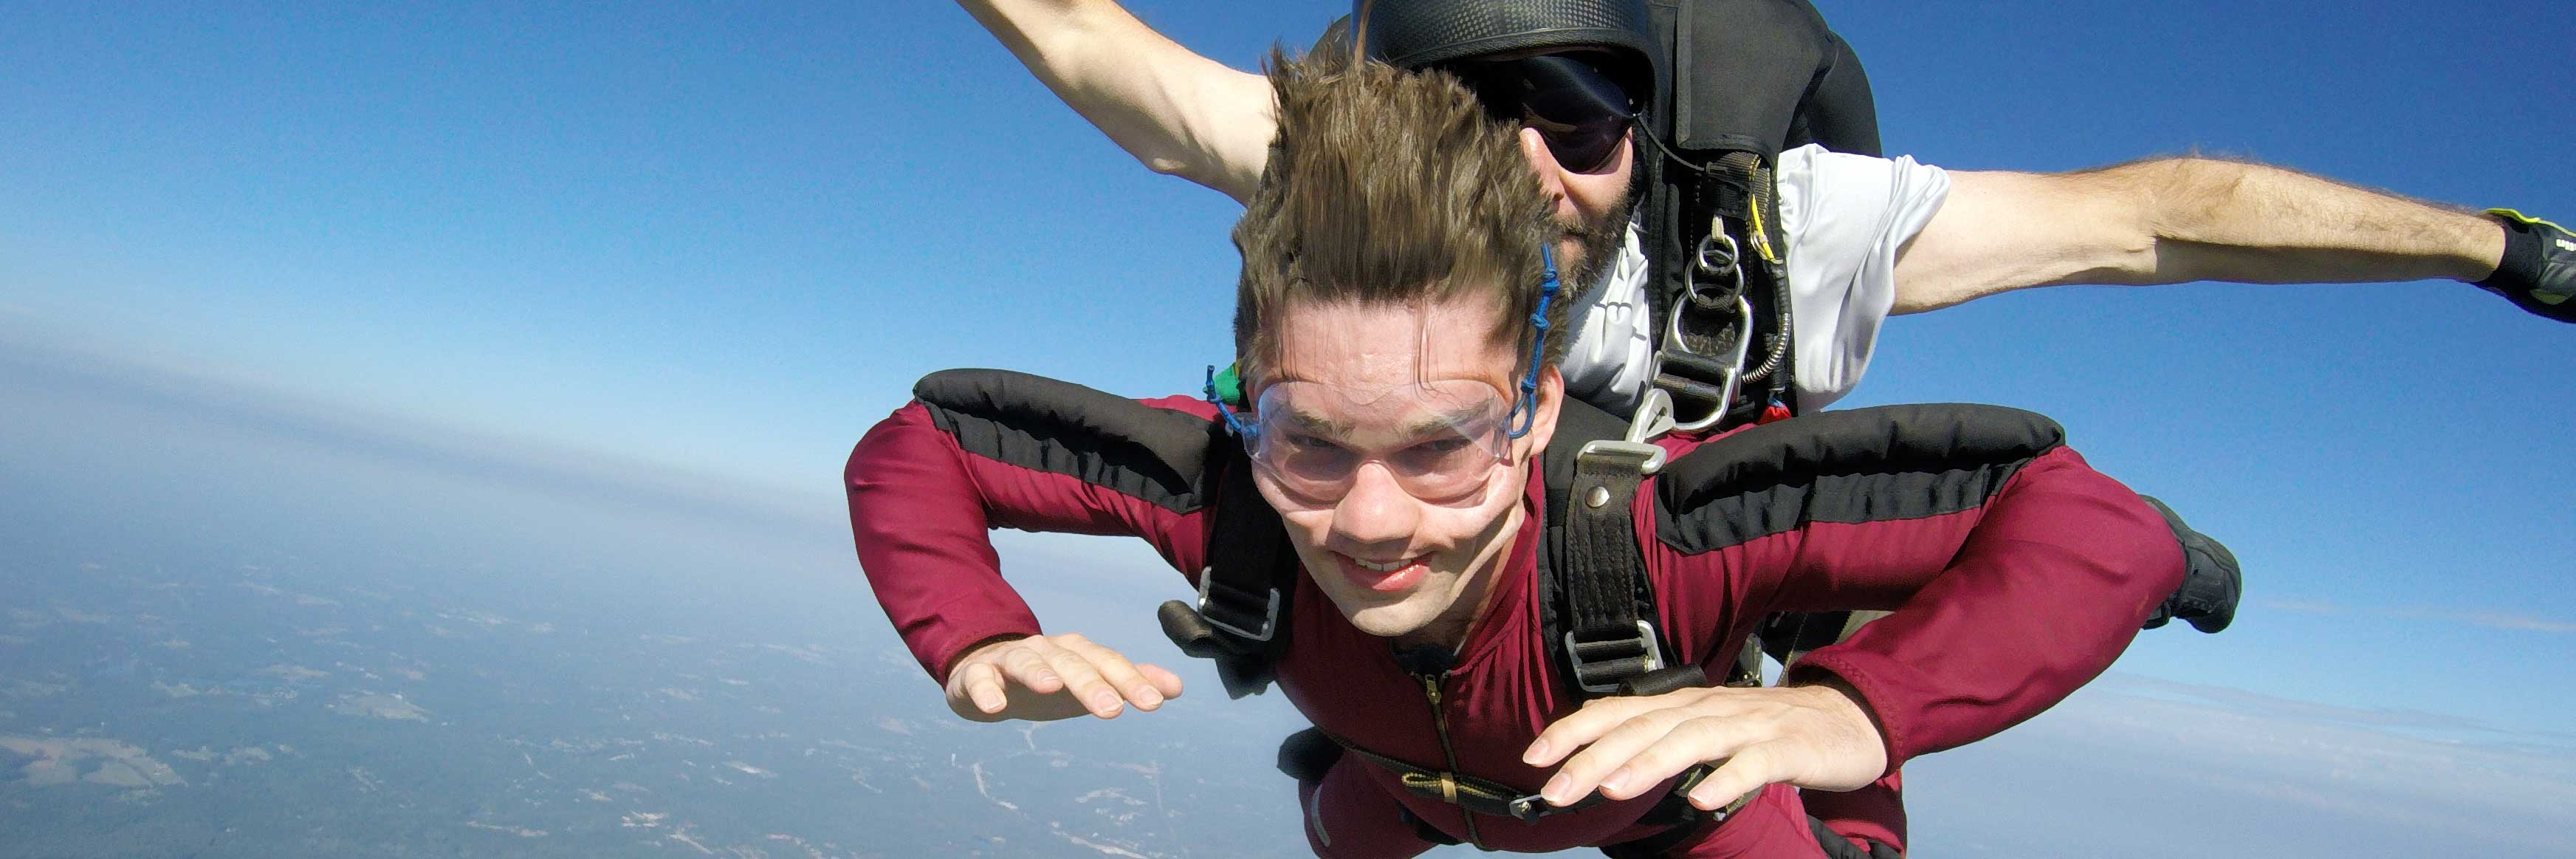 Age Requirements for Skydiving